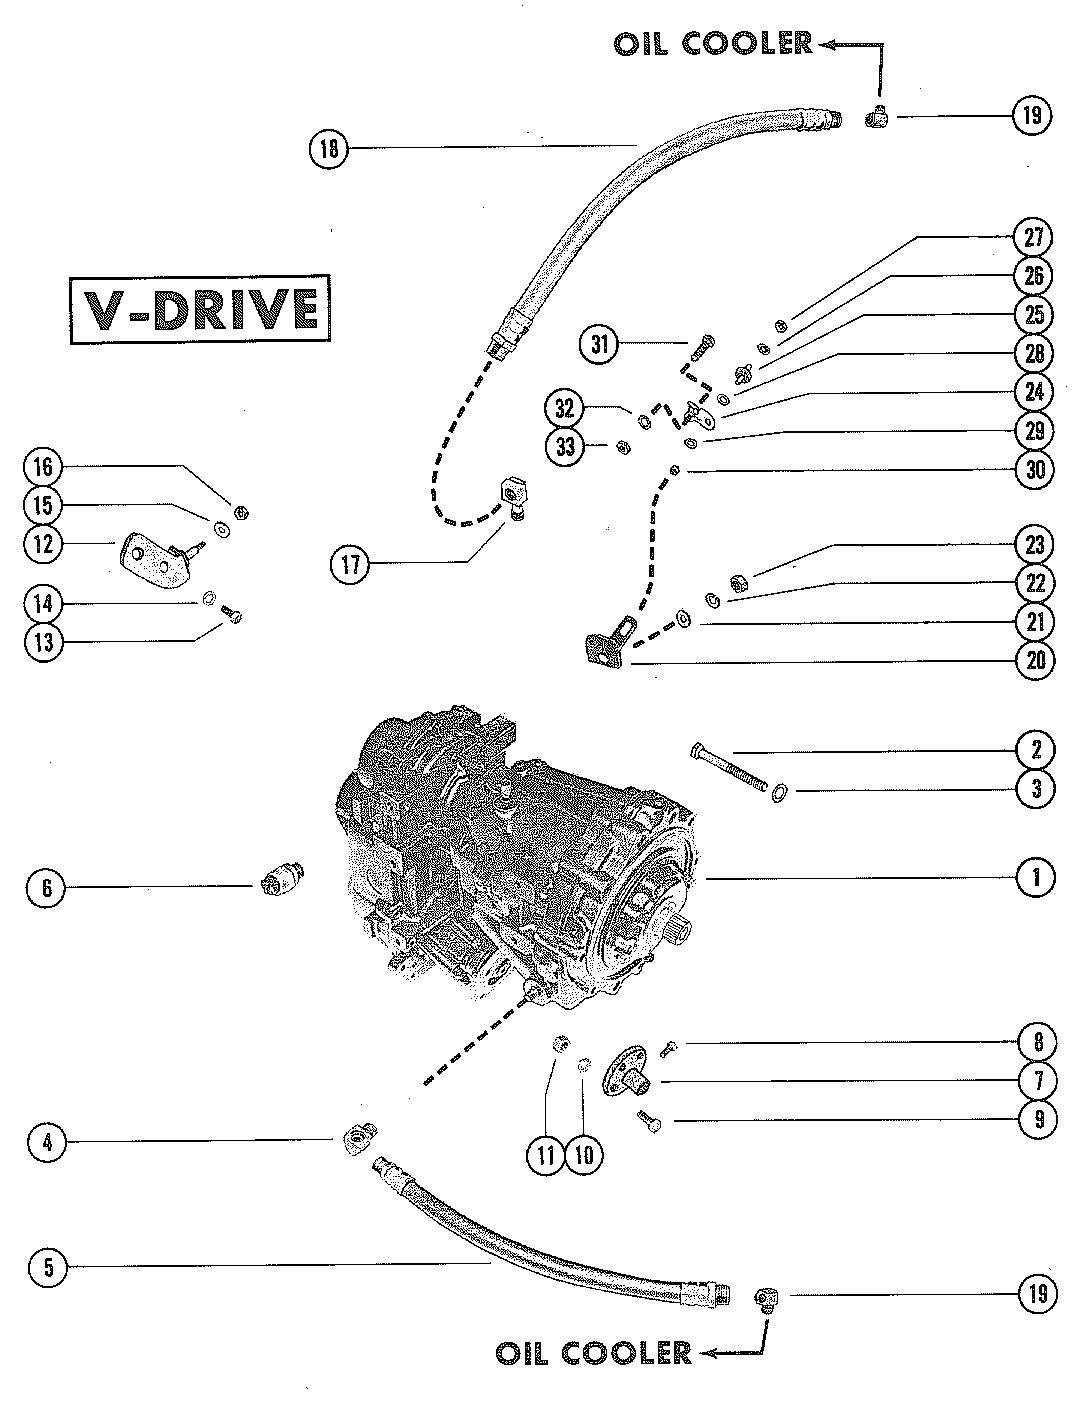 MERCRUISER 233 ENGINE TRANSMISSION AND RELATED PARTS (V-DRIVE)